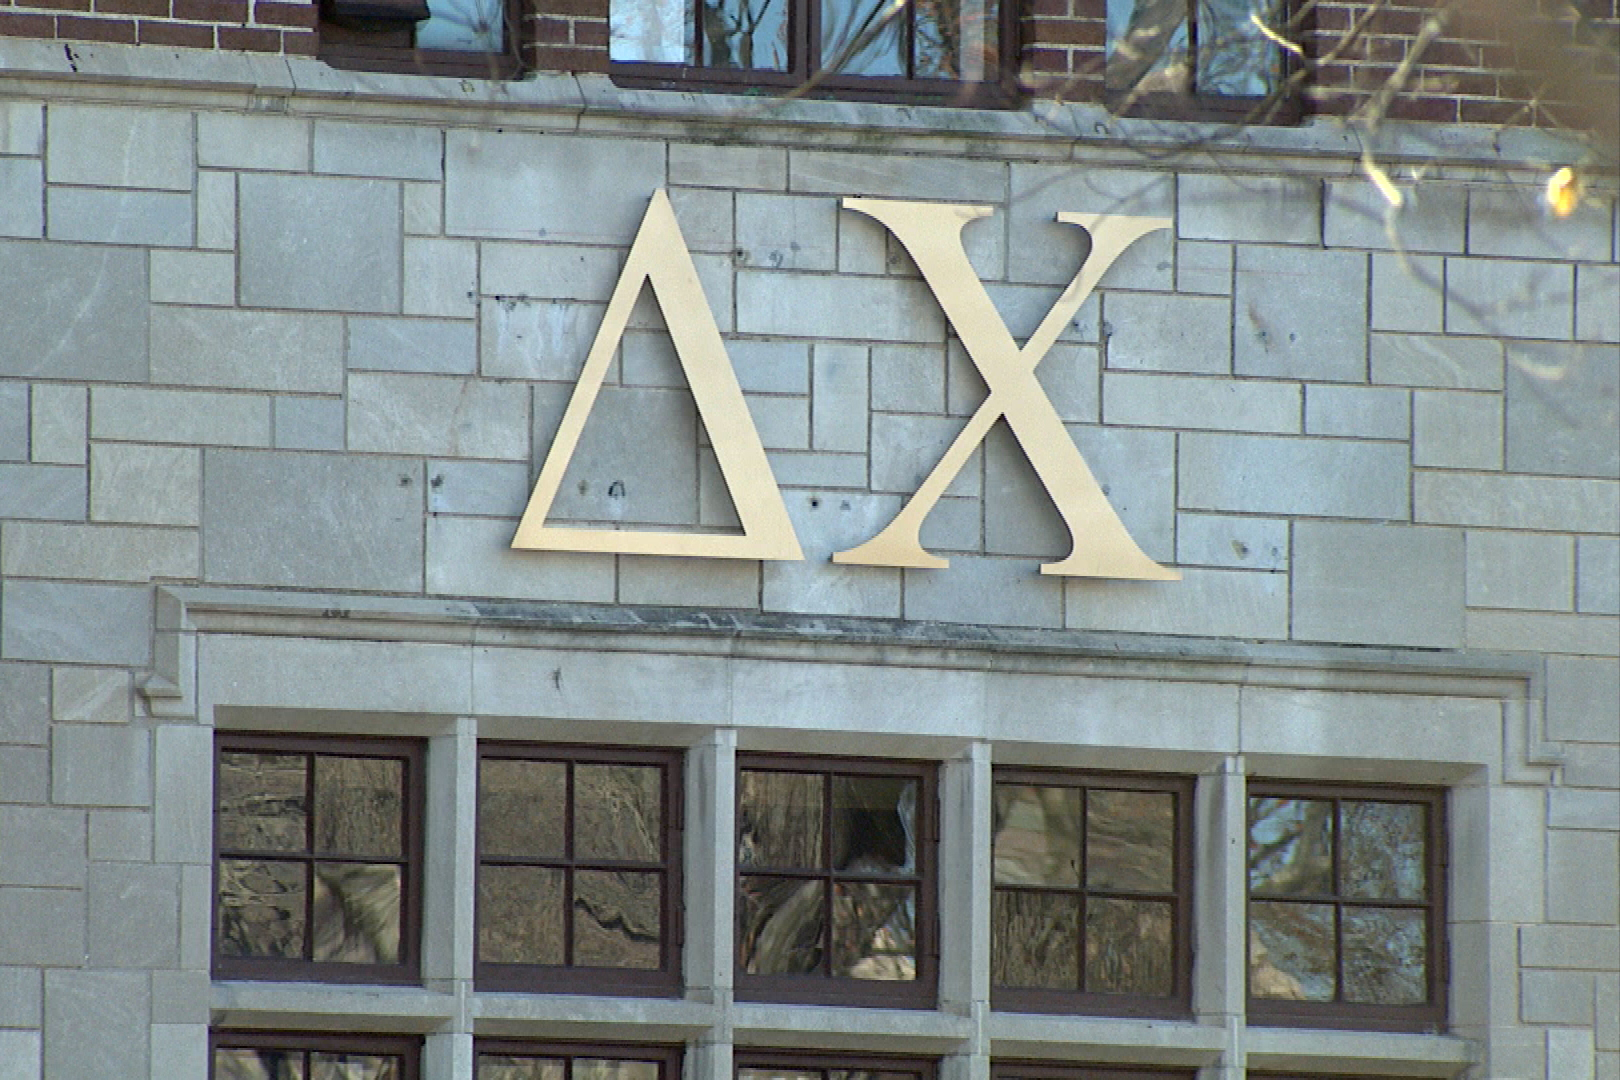 Fraternity letters affixed to the brick exterior of a frat house.